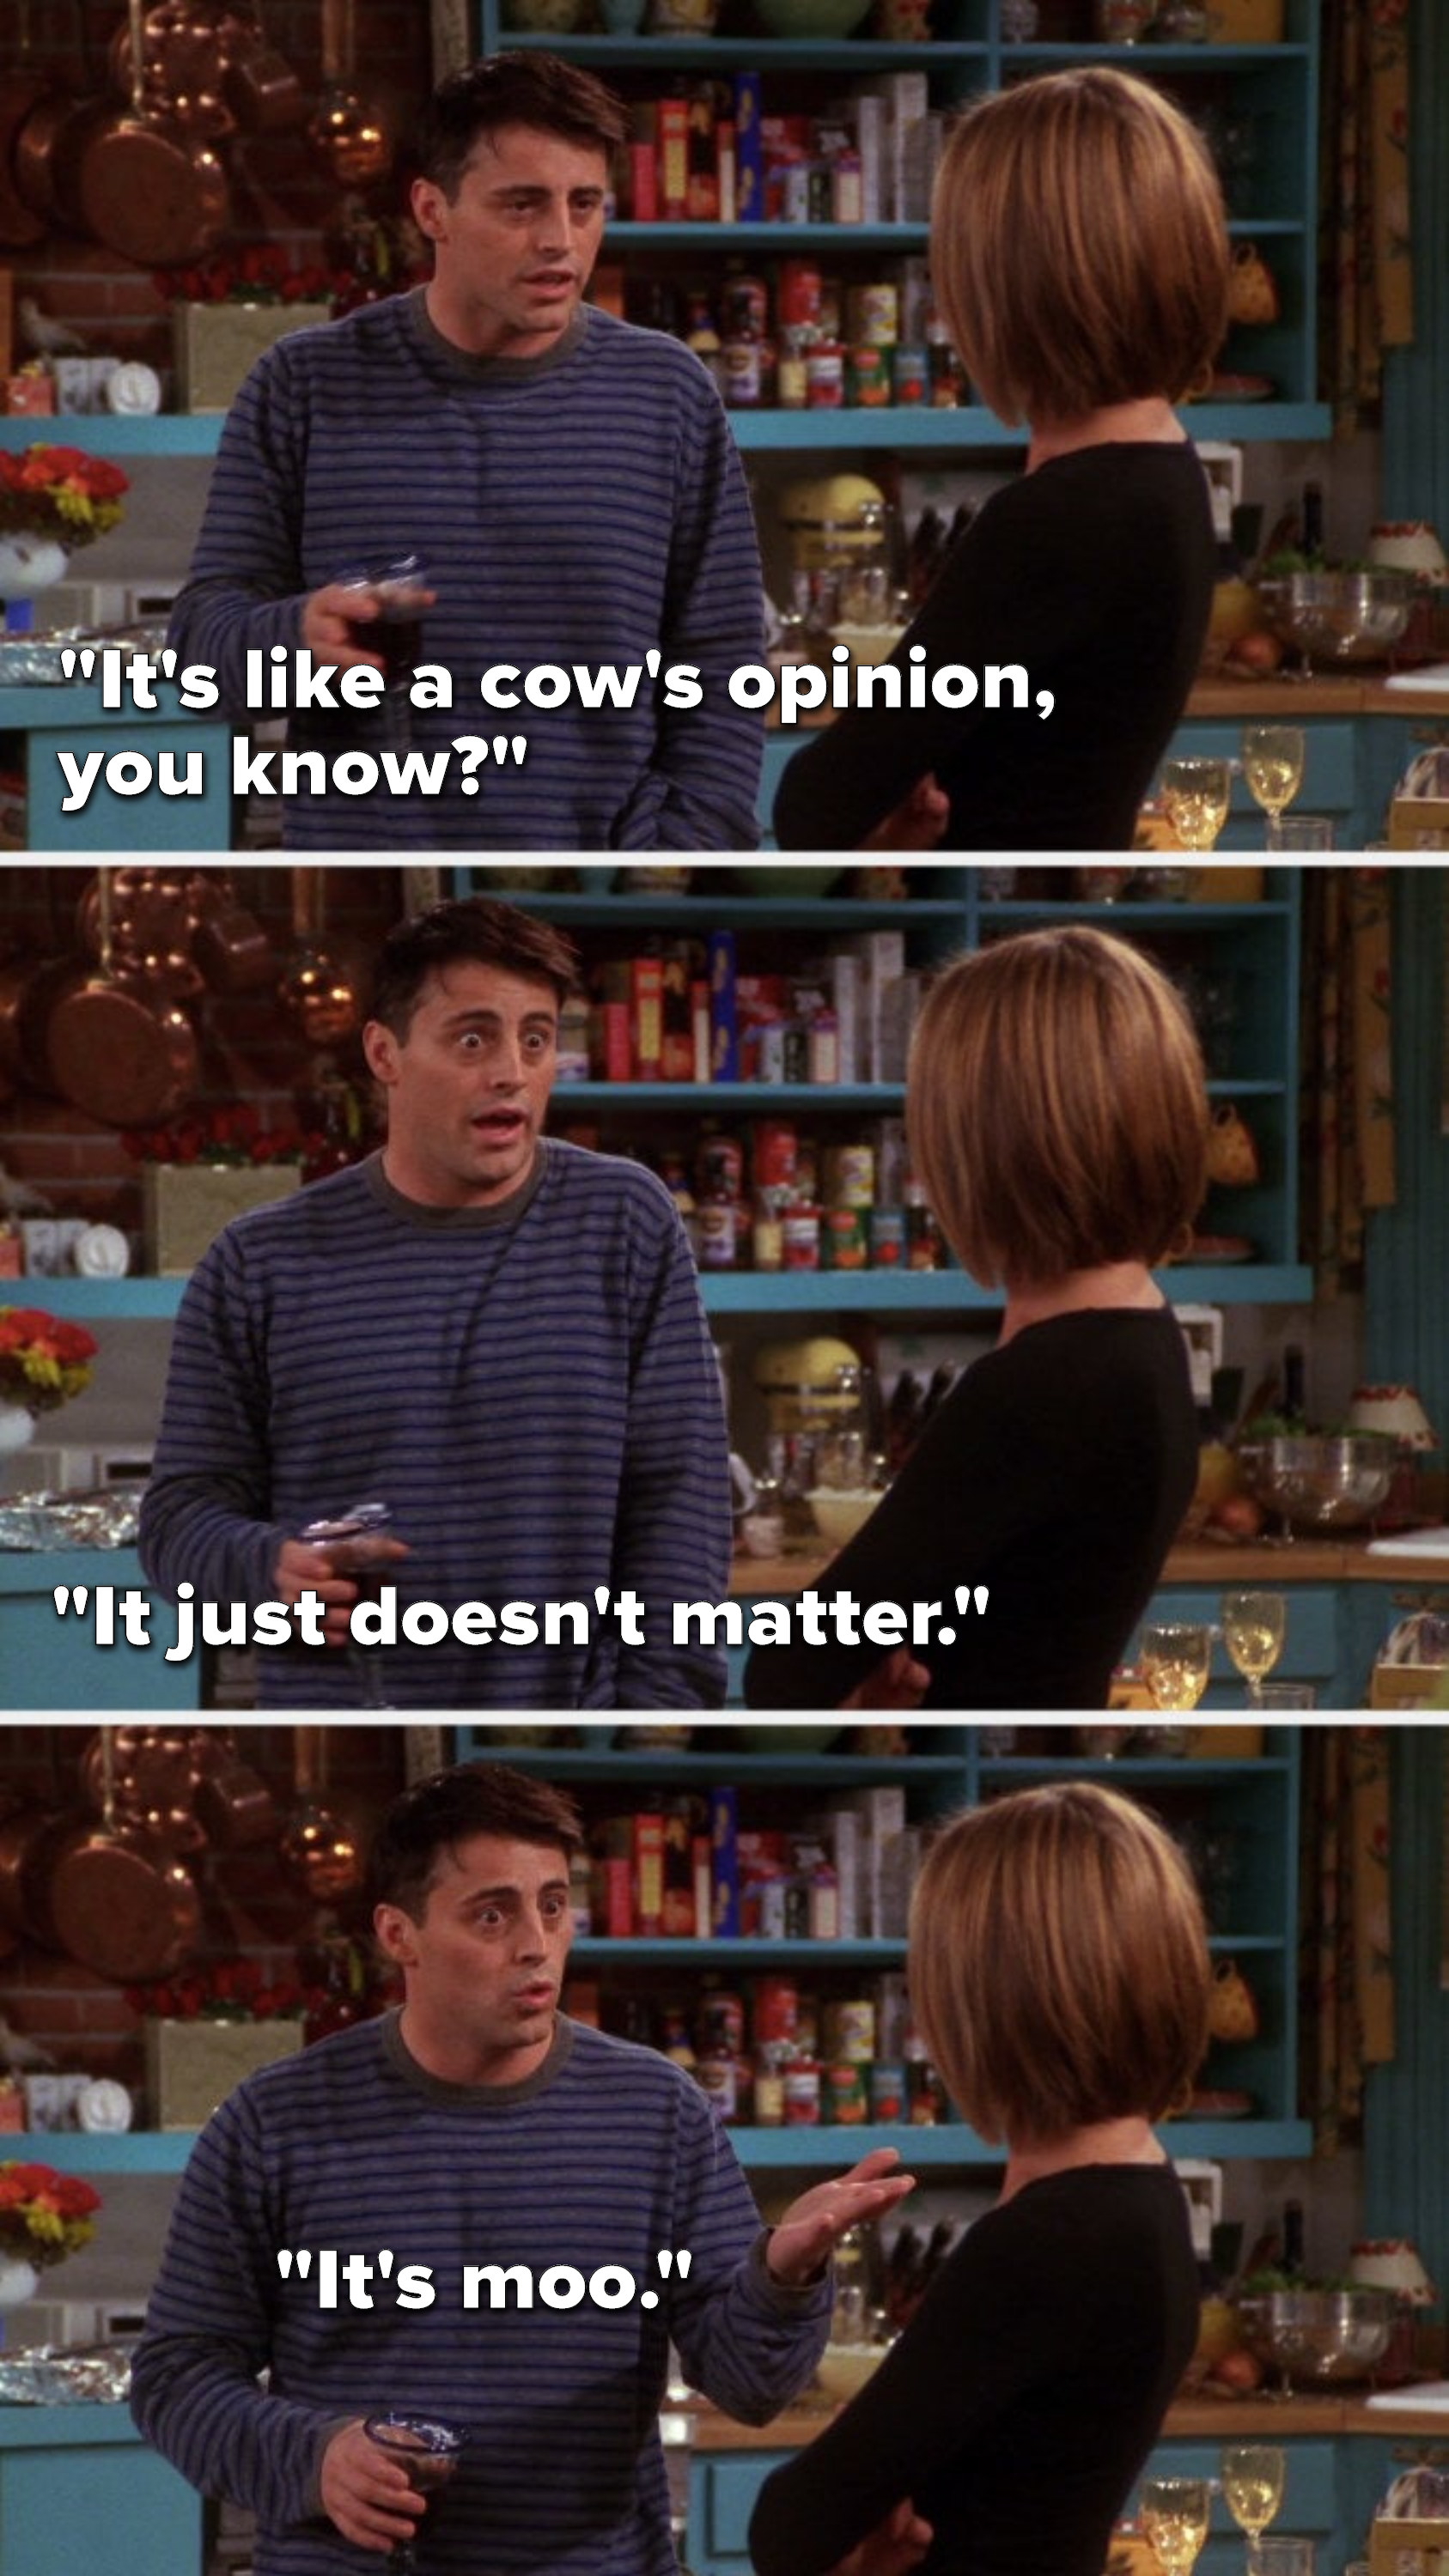 """Joey says, """"It's like a cow's opinion, you know, it just doesn't matter, it's moo"""""""